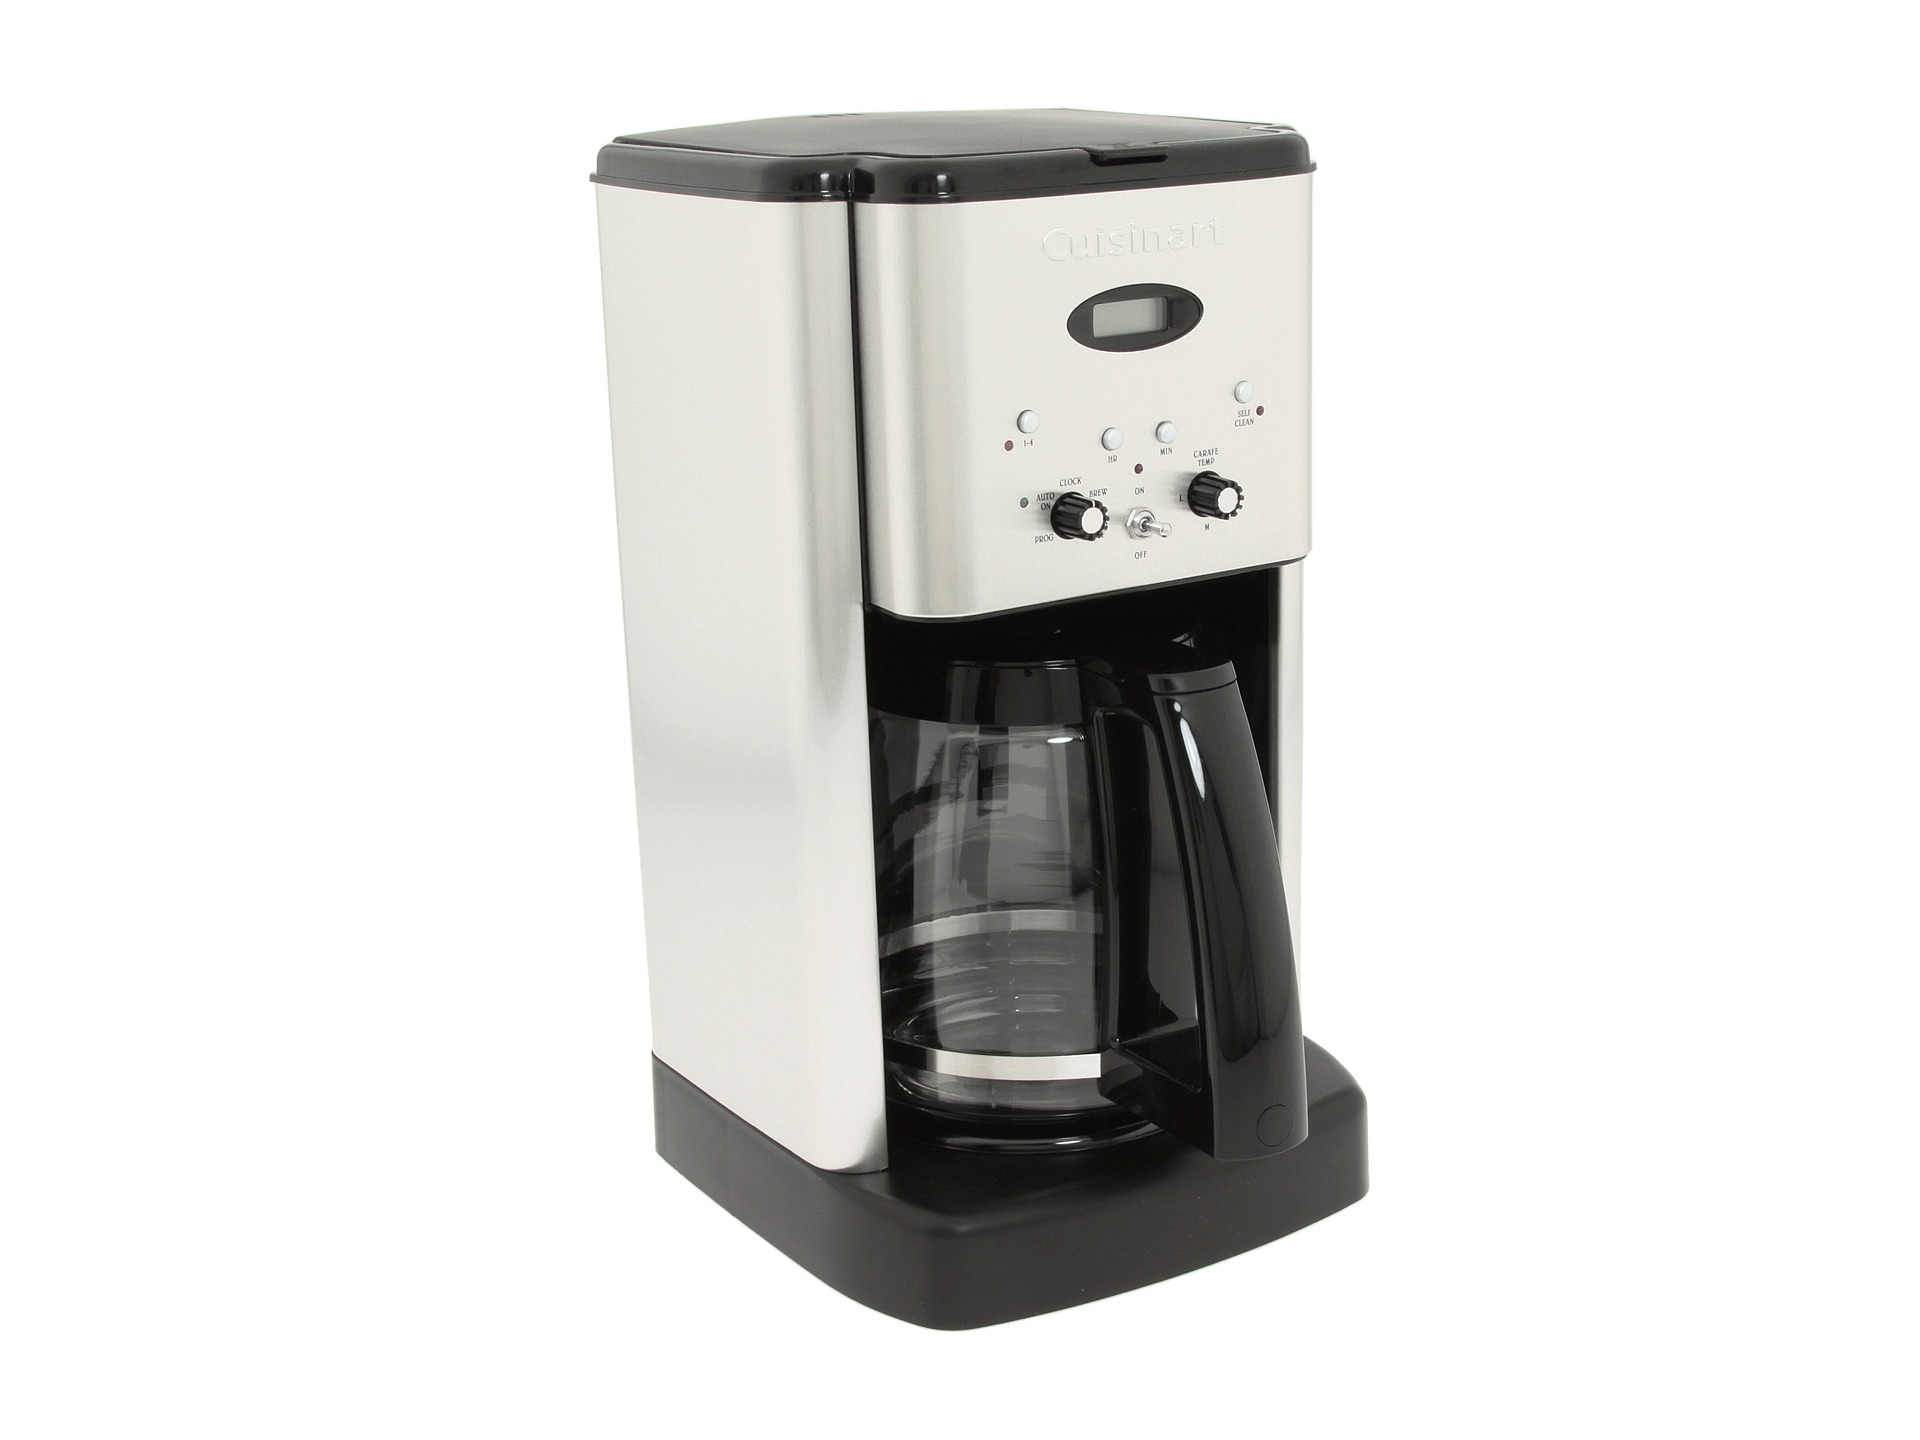 Cuisinart Coffee Maker Troubleshooting Dcc 1200 Fiturinfo for